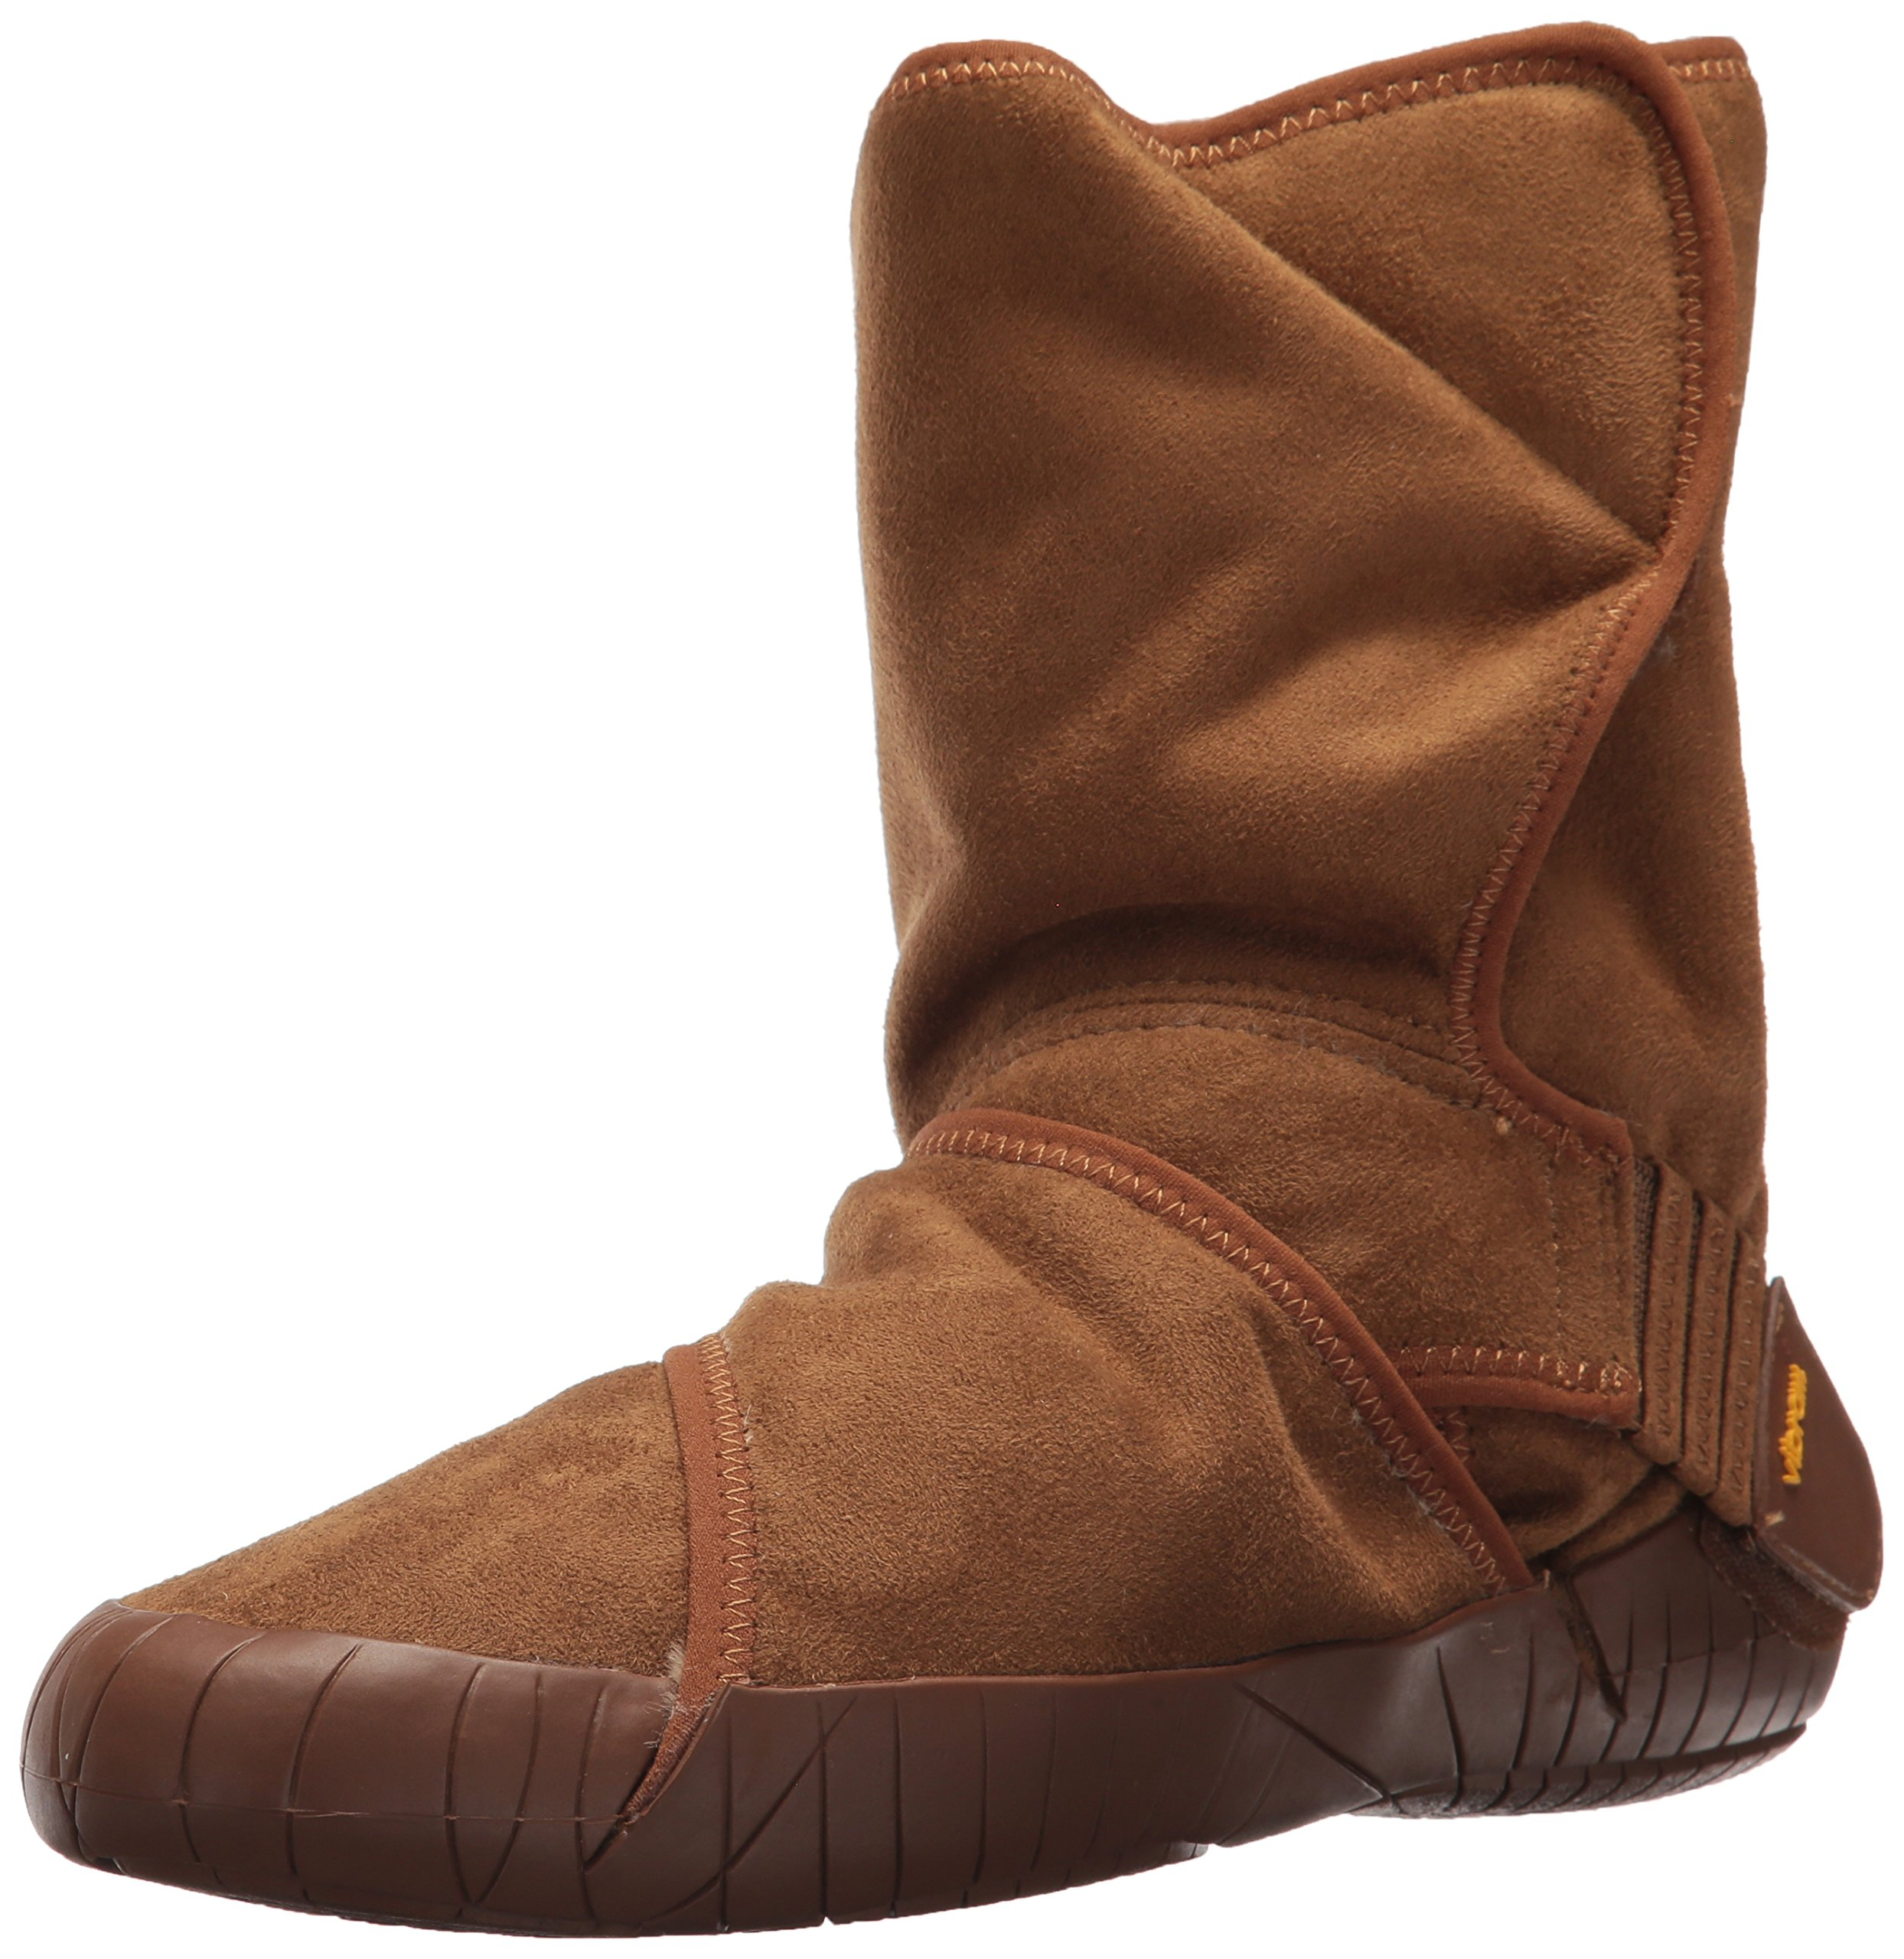 Vibram Furoshiki Mid Boot Classic Shearling Sneaker, Camel Brown, EU:42-43/UK Man:8-9/UK Woman:9-10.5/cm:26.5-27.5/US Man:9-10/US Woman:10-11.5 by Vibram